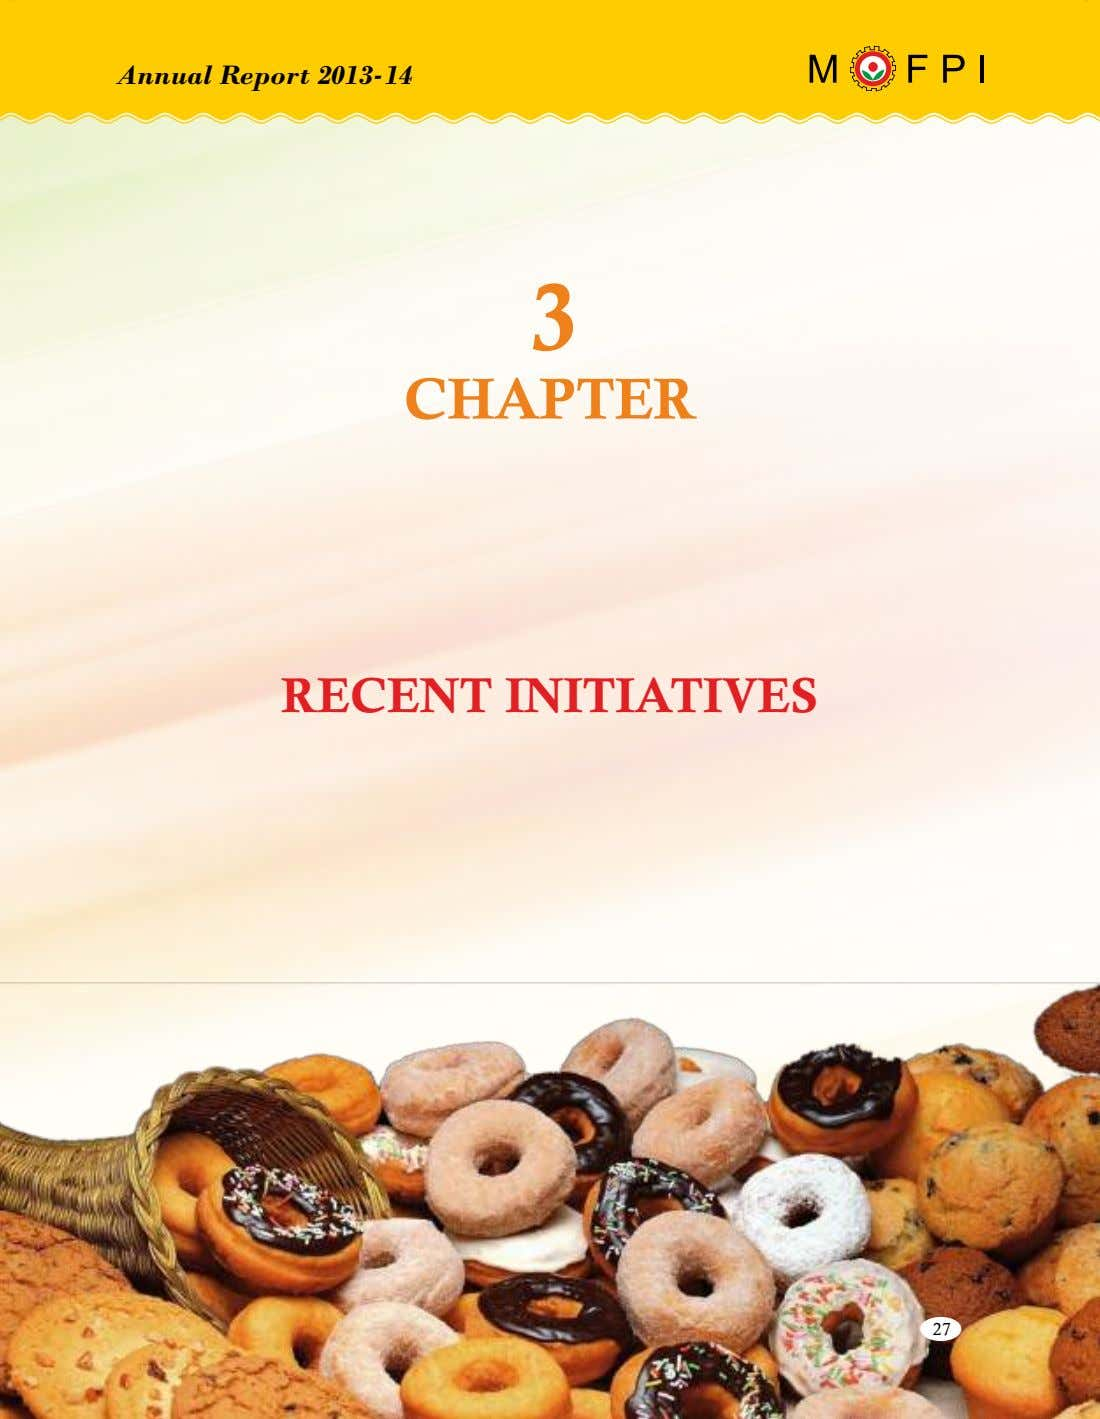 Annual Report 2013-14 3 CHAPTER RECENT INITIATIVES 27